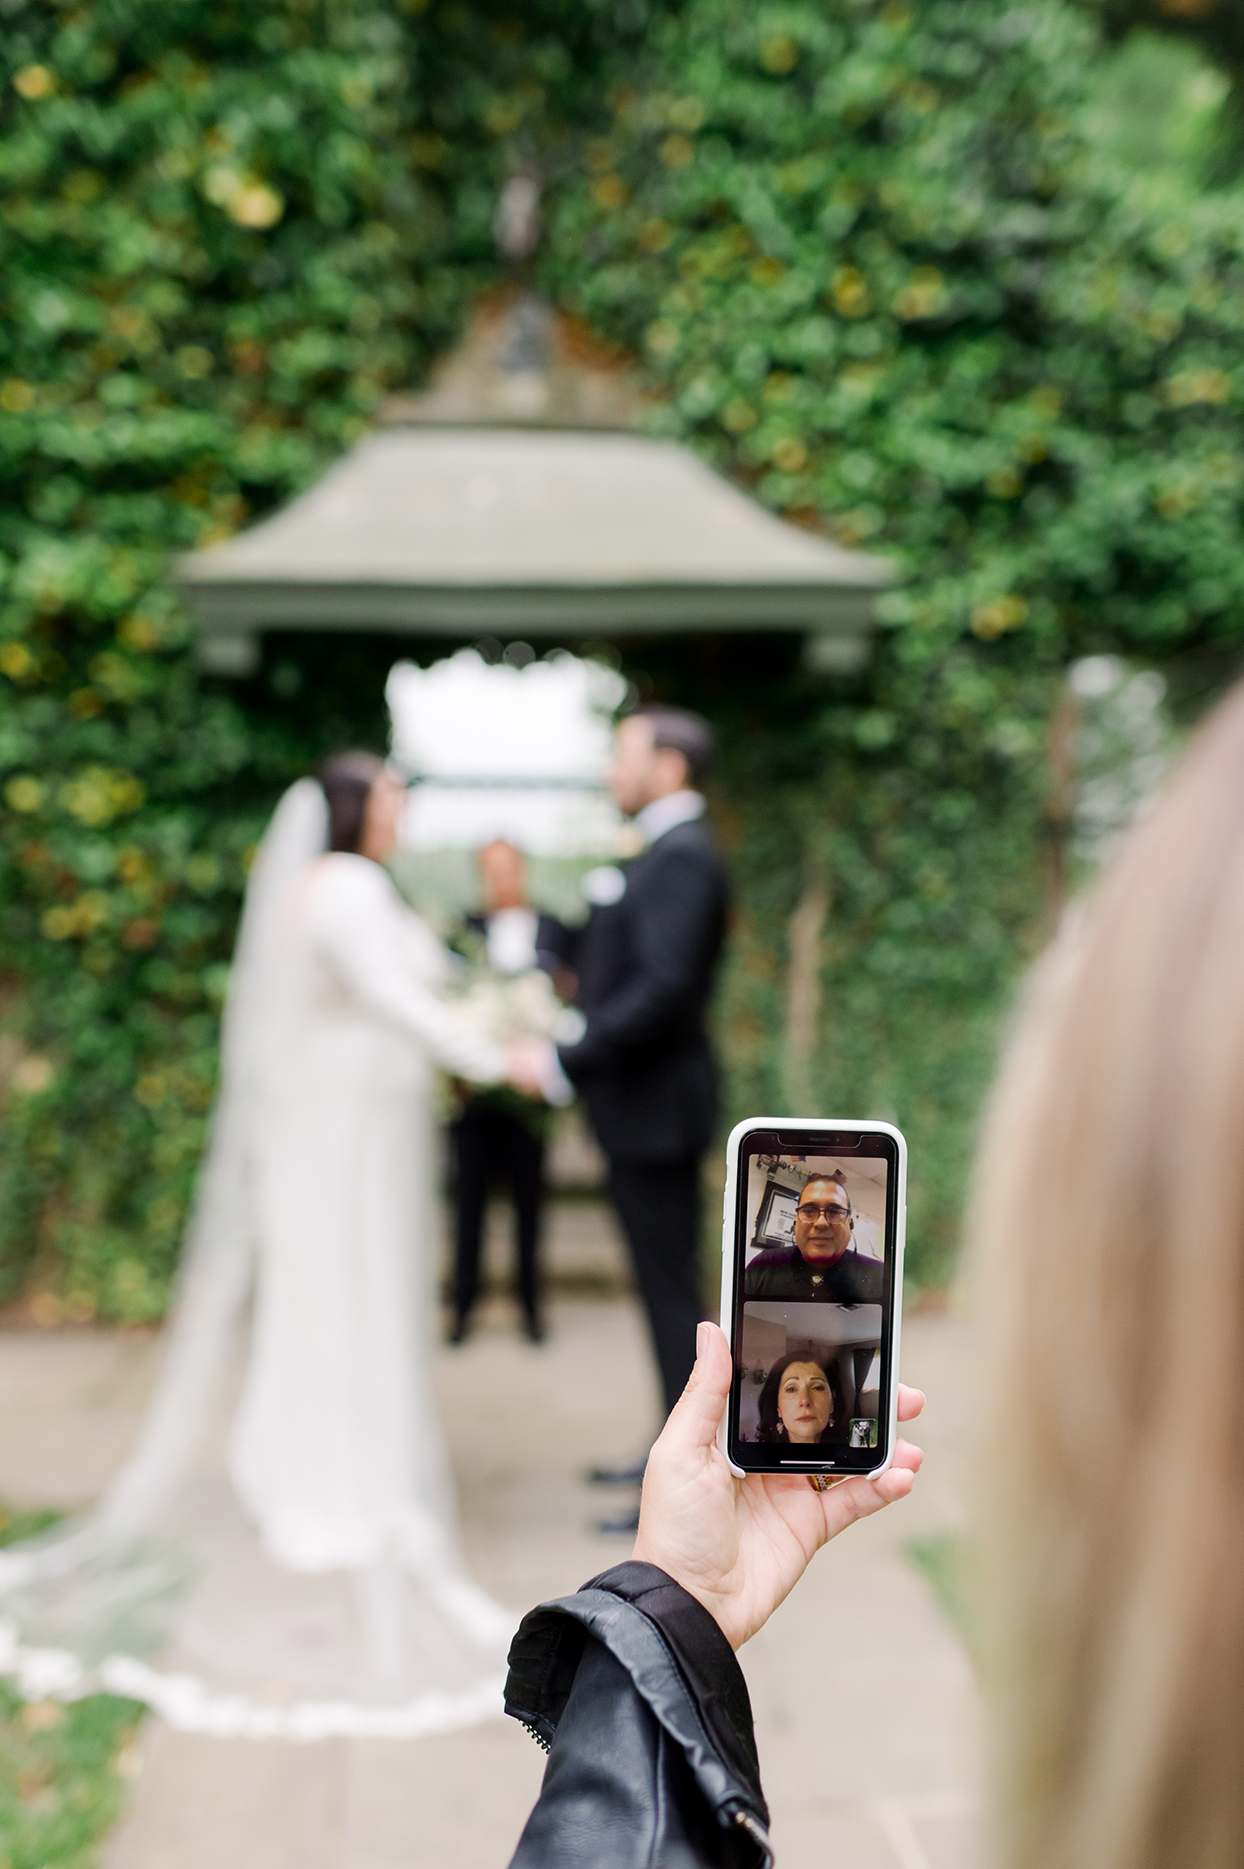 Parents of the bride watching ceremony via FaceTime